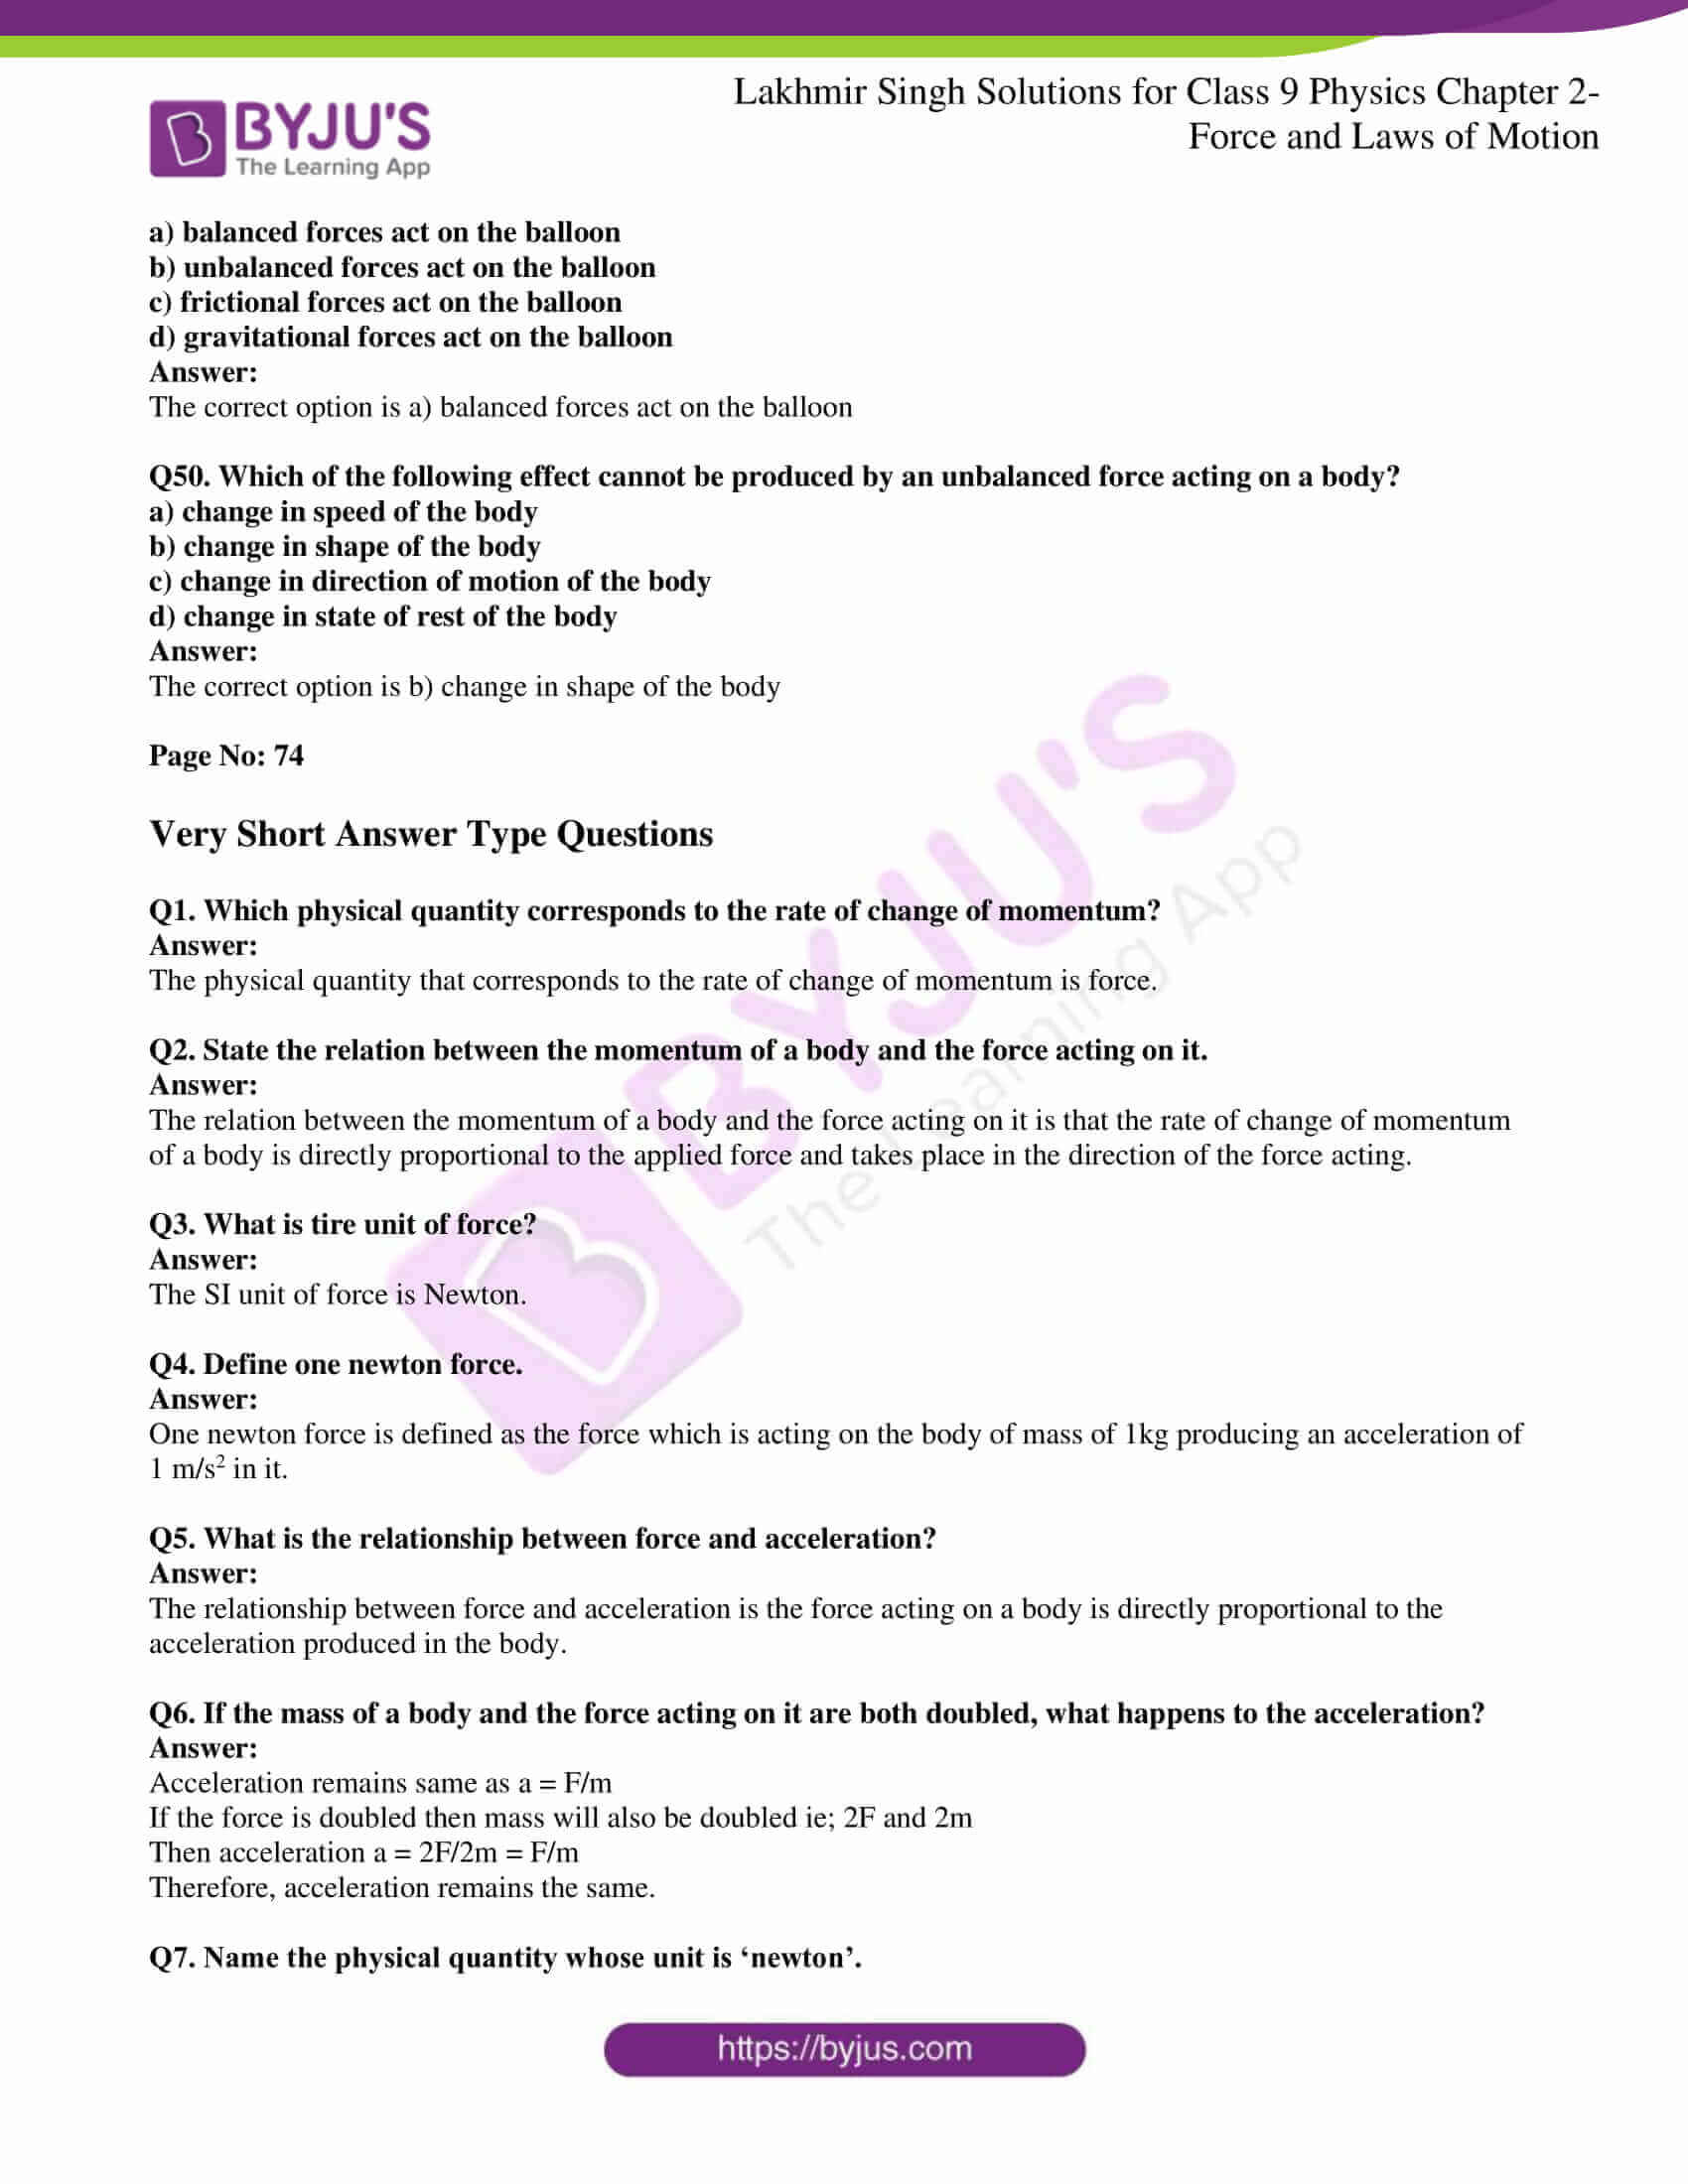 lakhmir singh solutions class 9 physics chapter 2 08